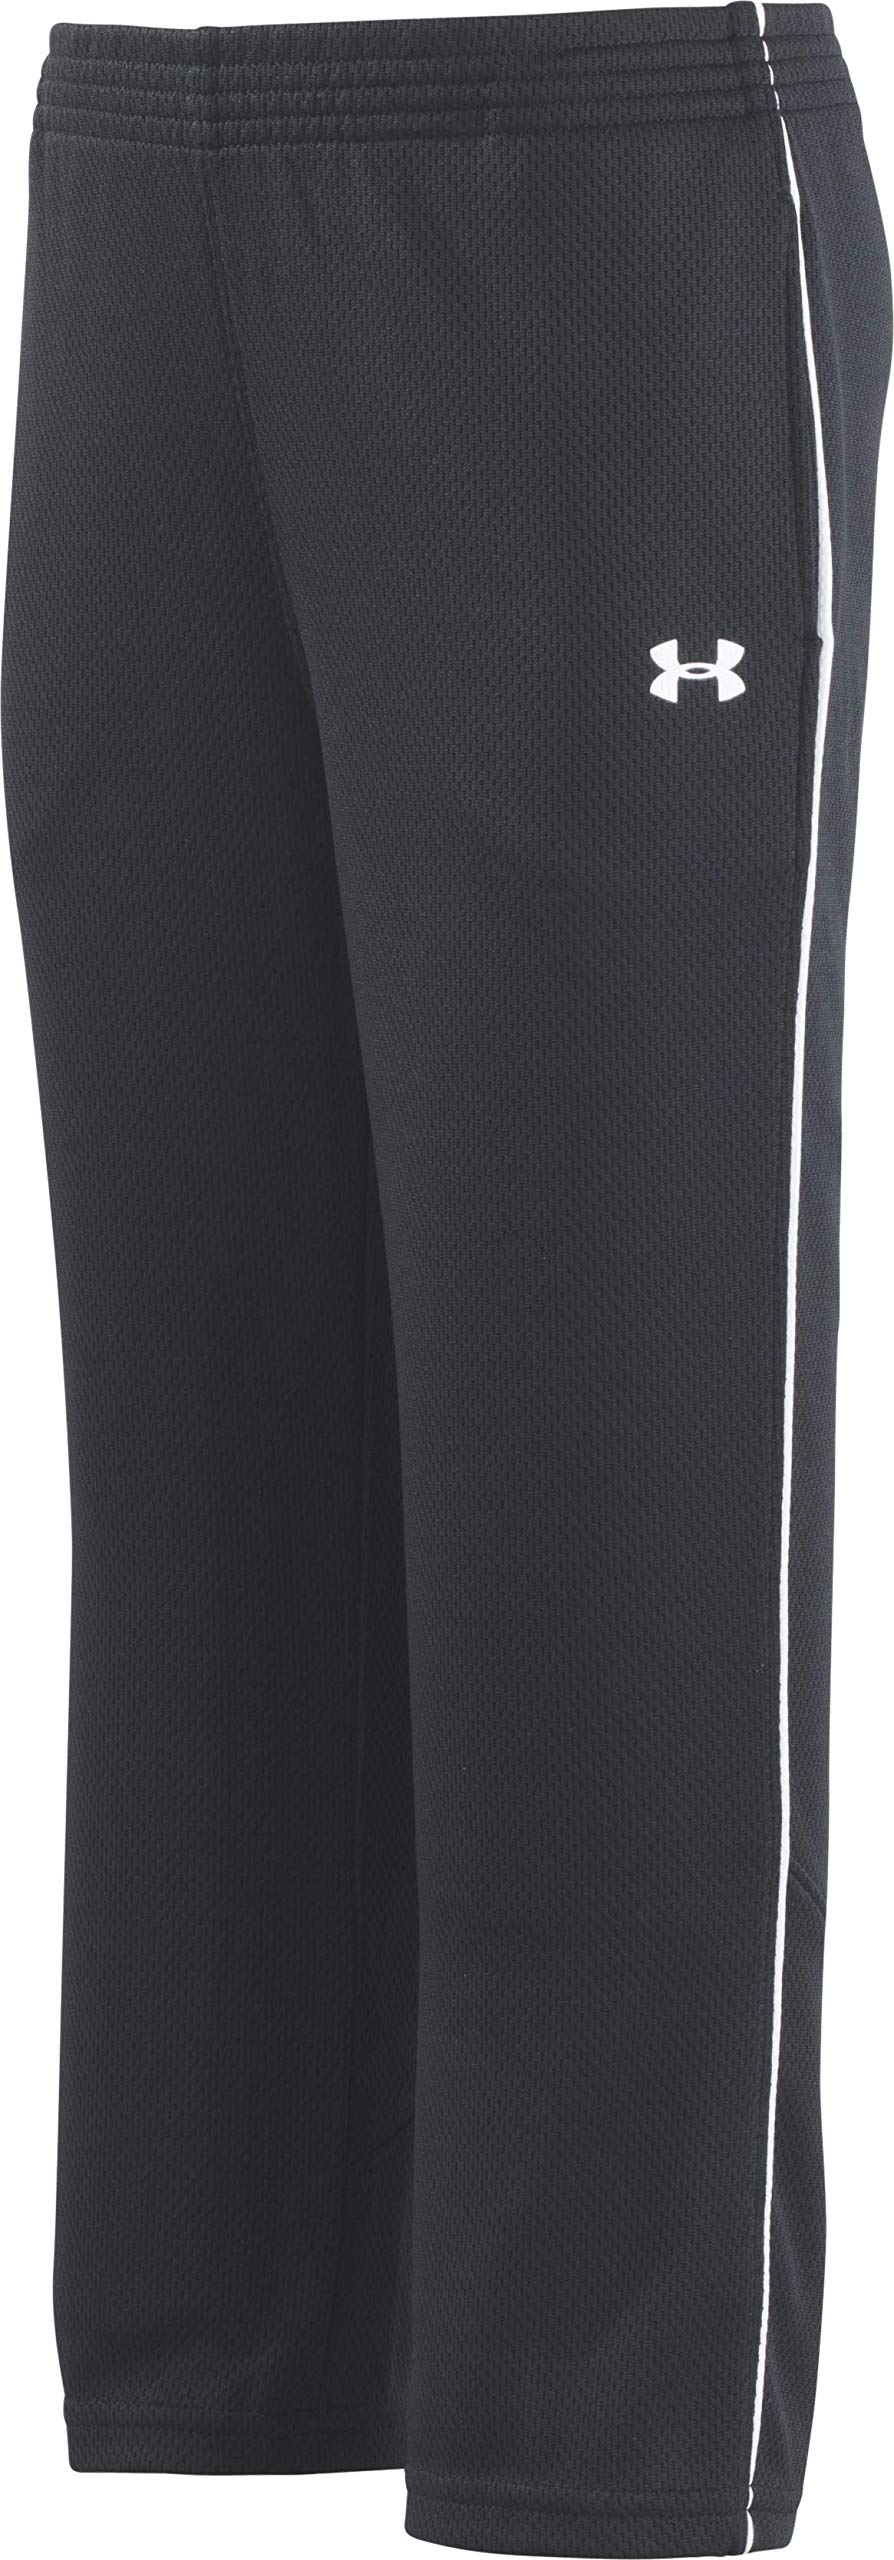 Under Armour Toddler Boys' Midweight Warm-Up Pant, Black, 2T by Under Armour